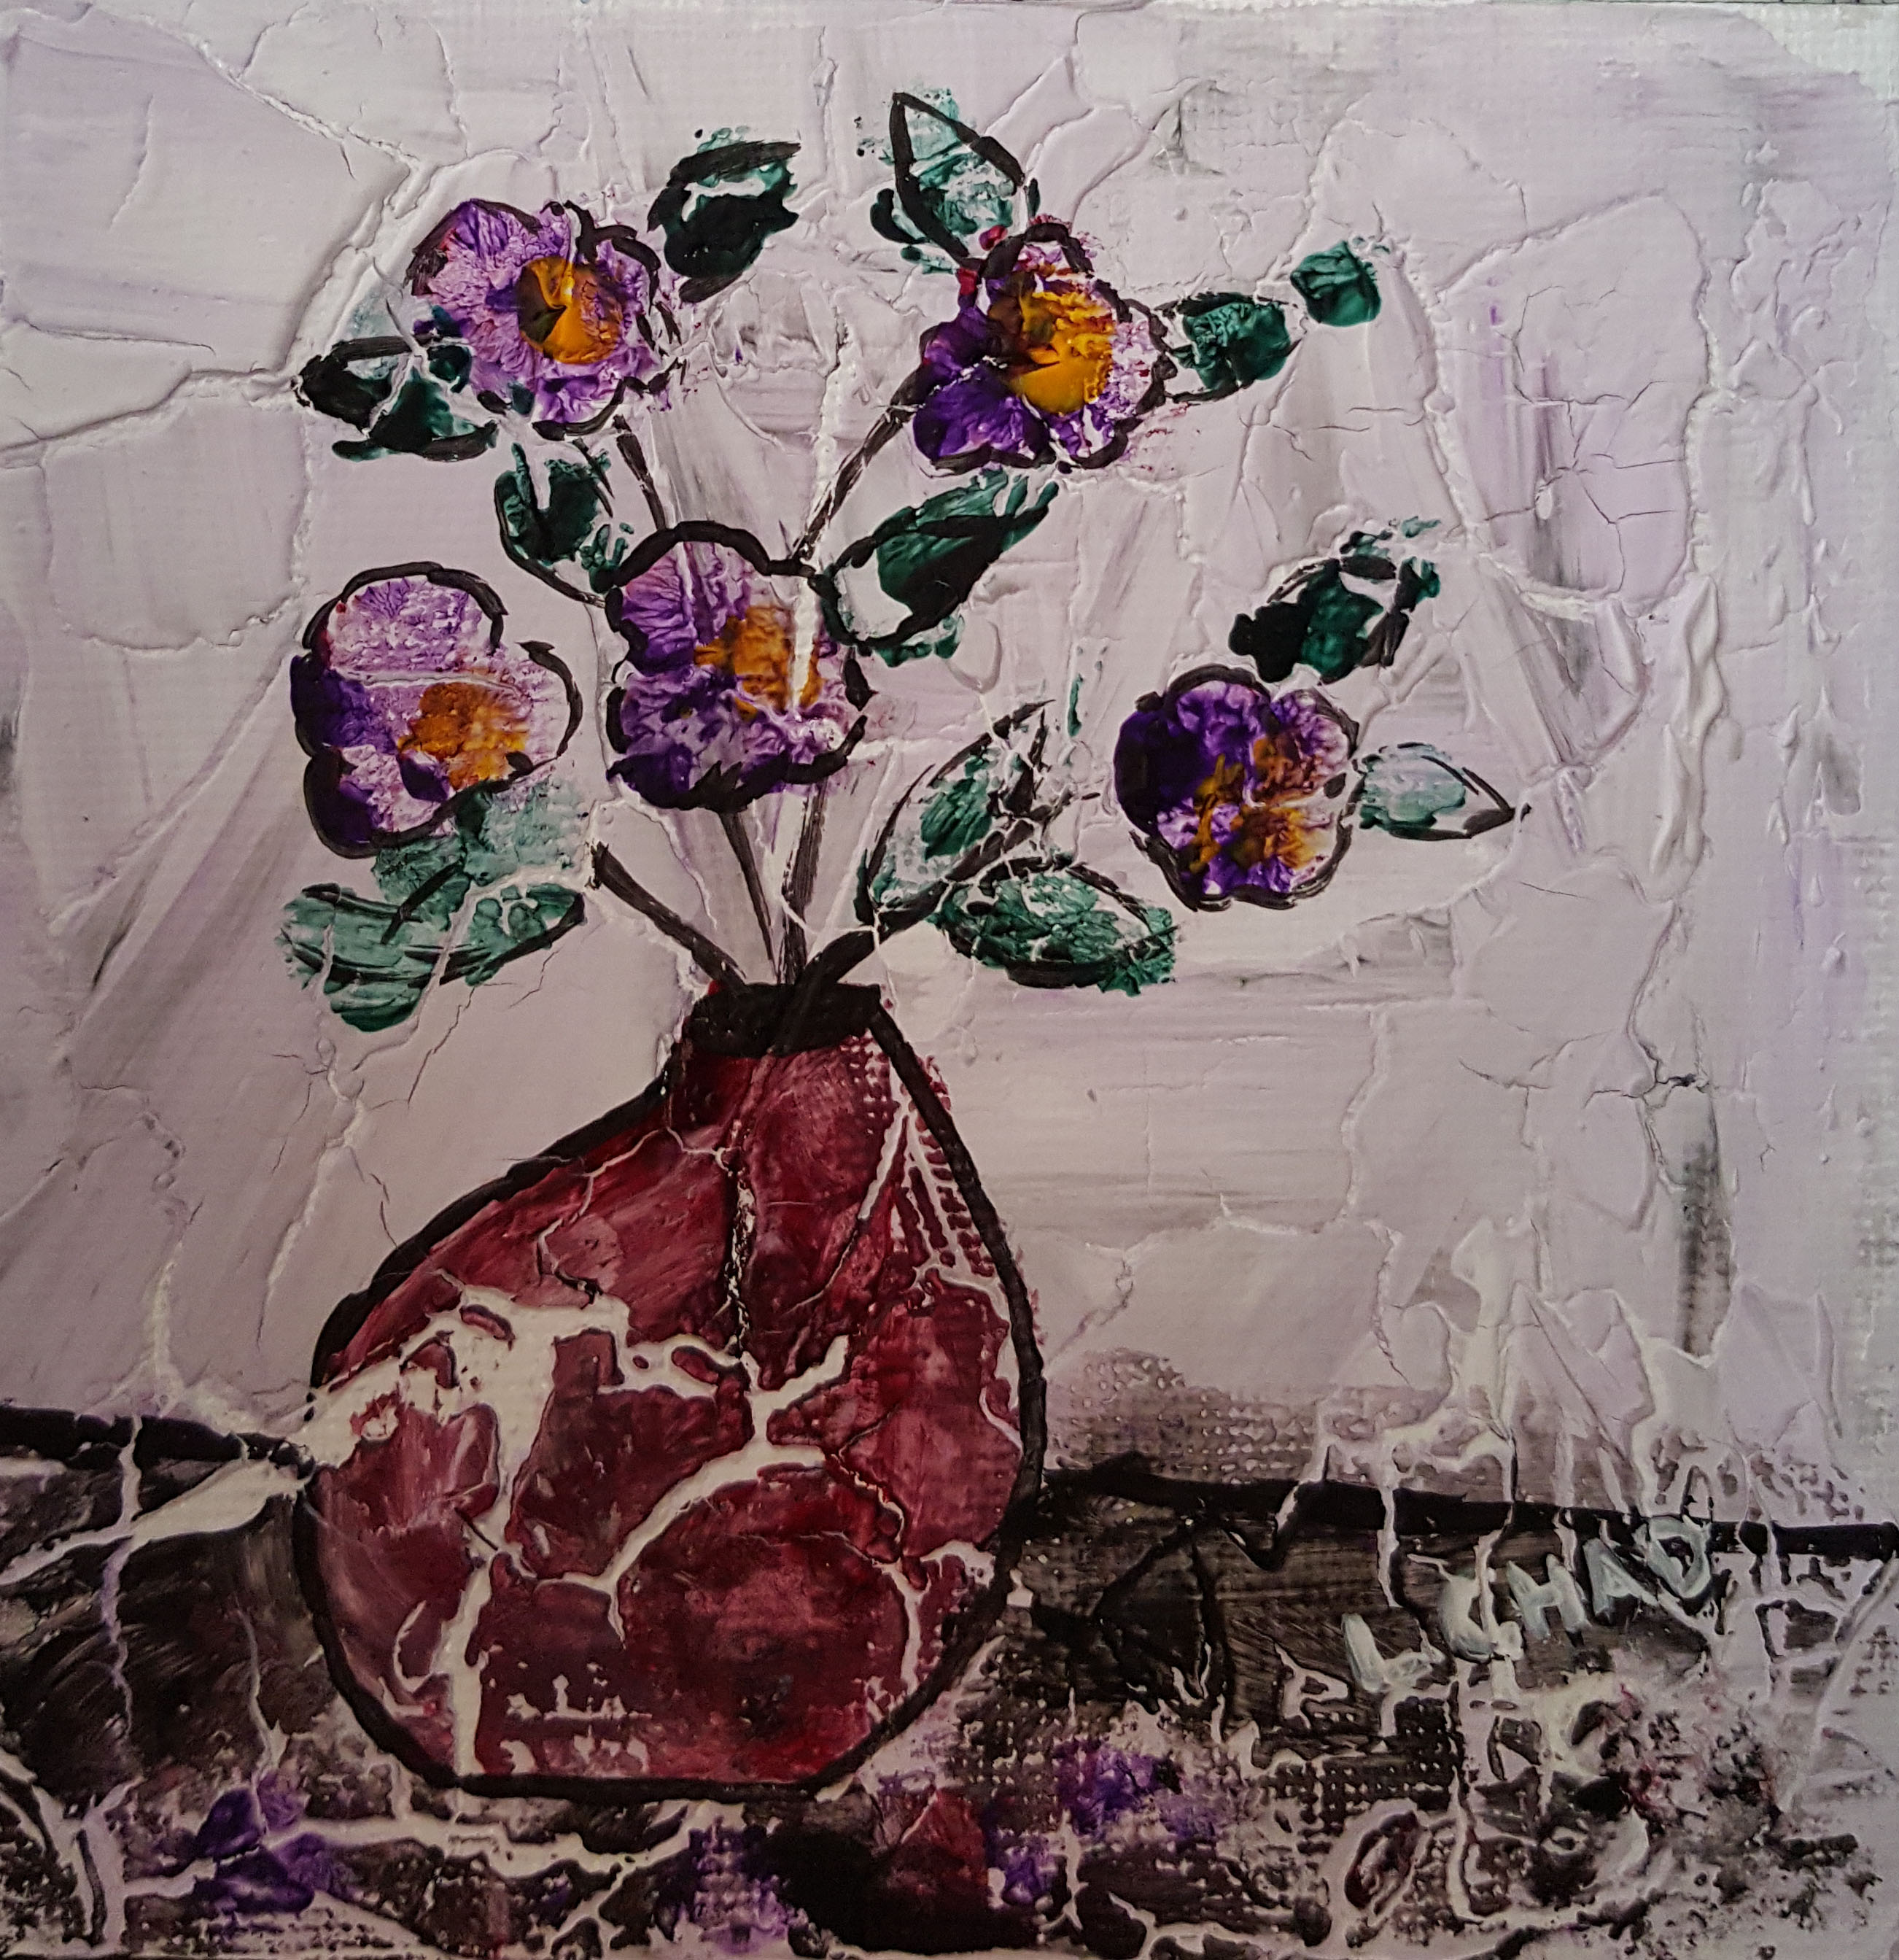 """Pansies"" [2015] Mixed media on canvas. 4.5"" x 4.5"" (unframed with easel) SOLD"